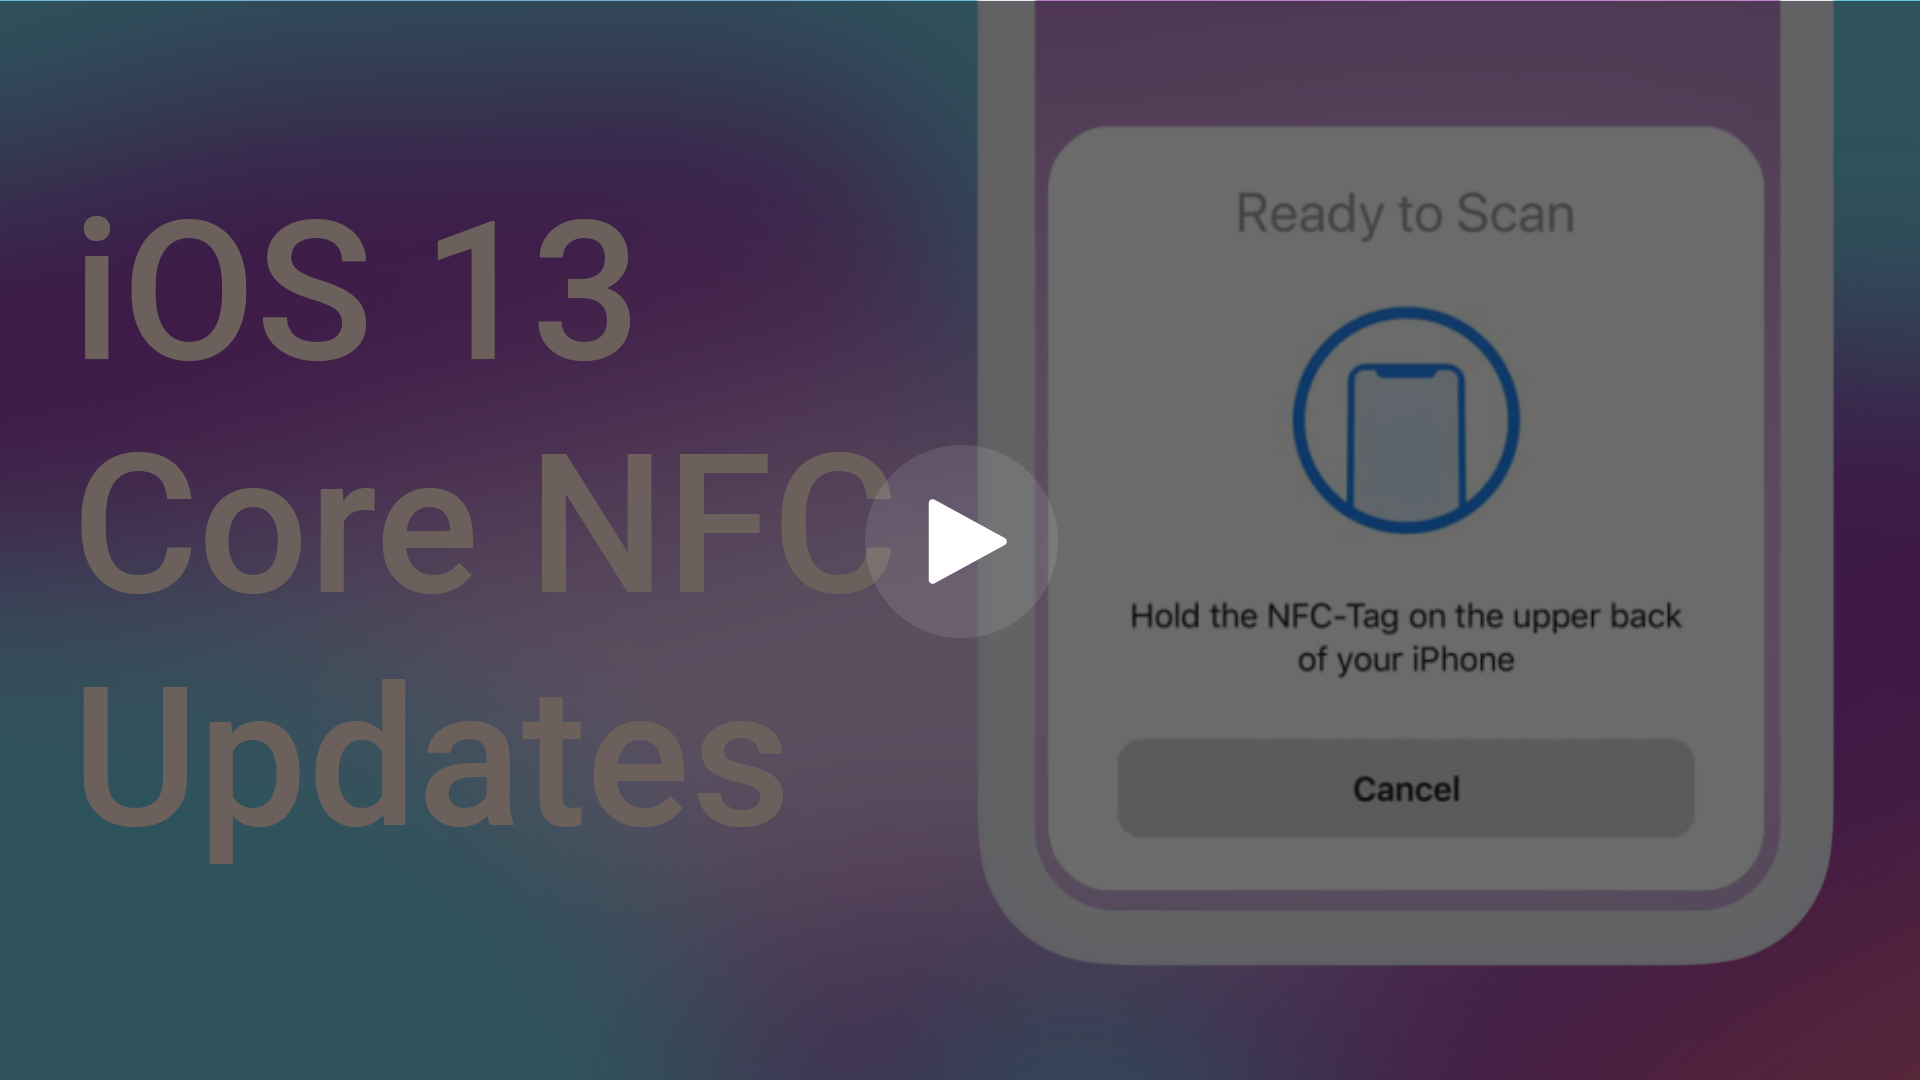 iOS 13 Core NFC Updates | iPhone 7, 8, X, XS, XR, 11